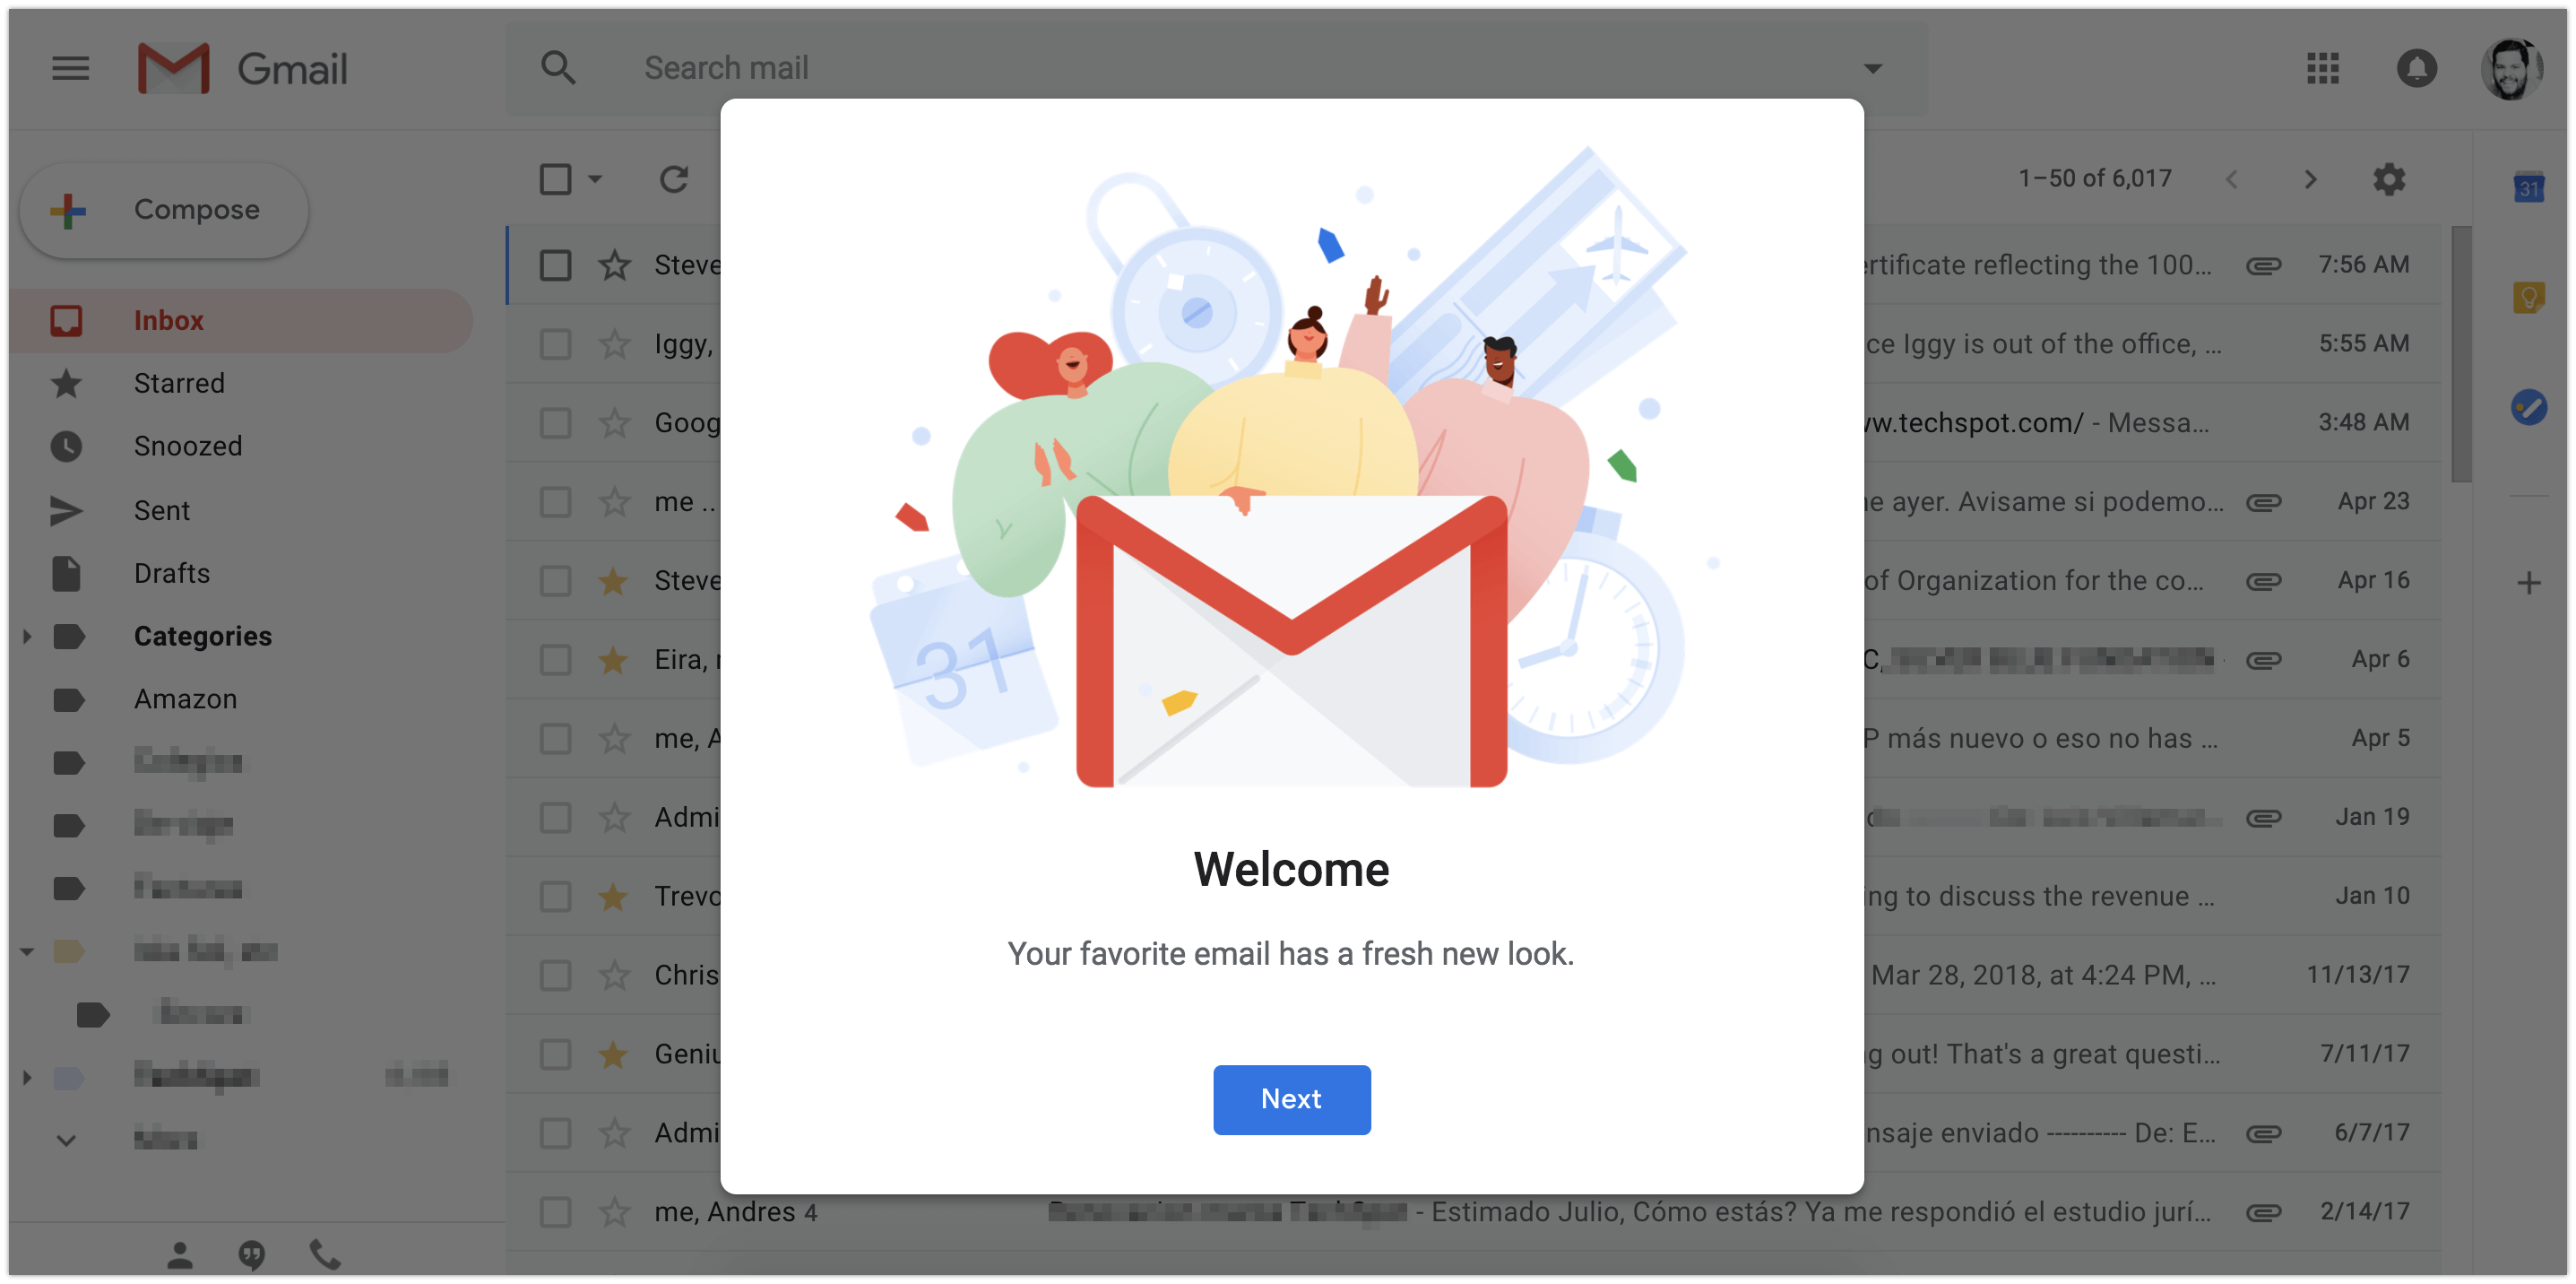 Google's Gmail update has arrived: self-destructing messages, snooze, and much more